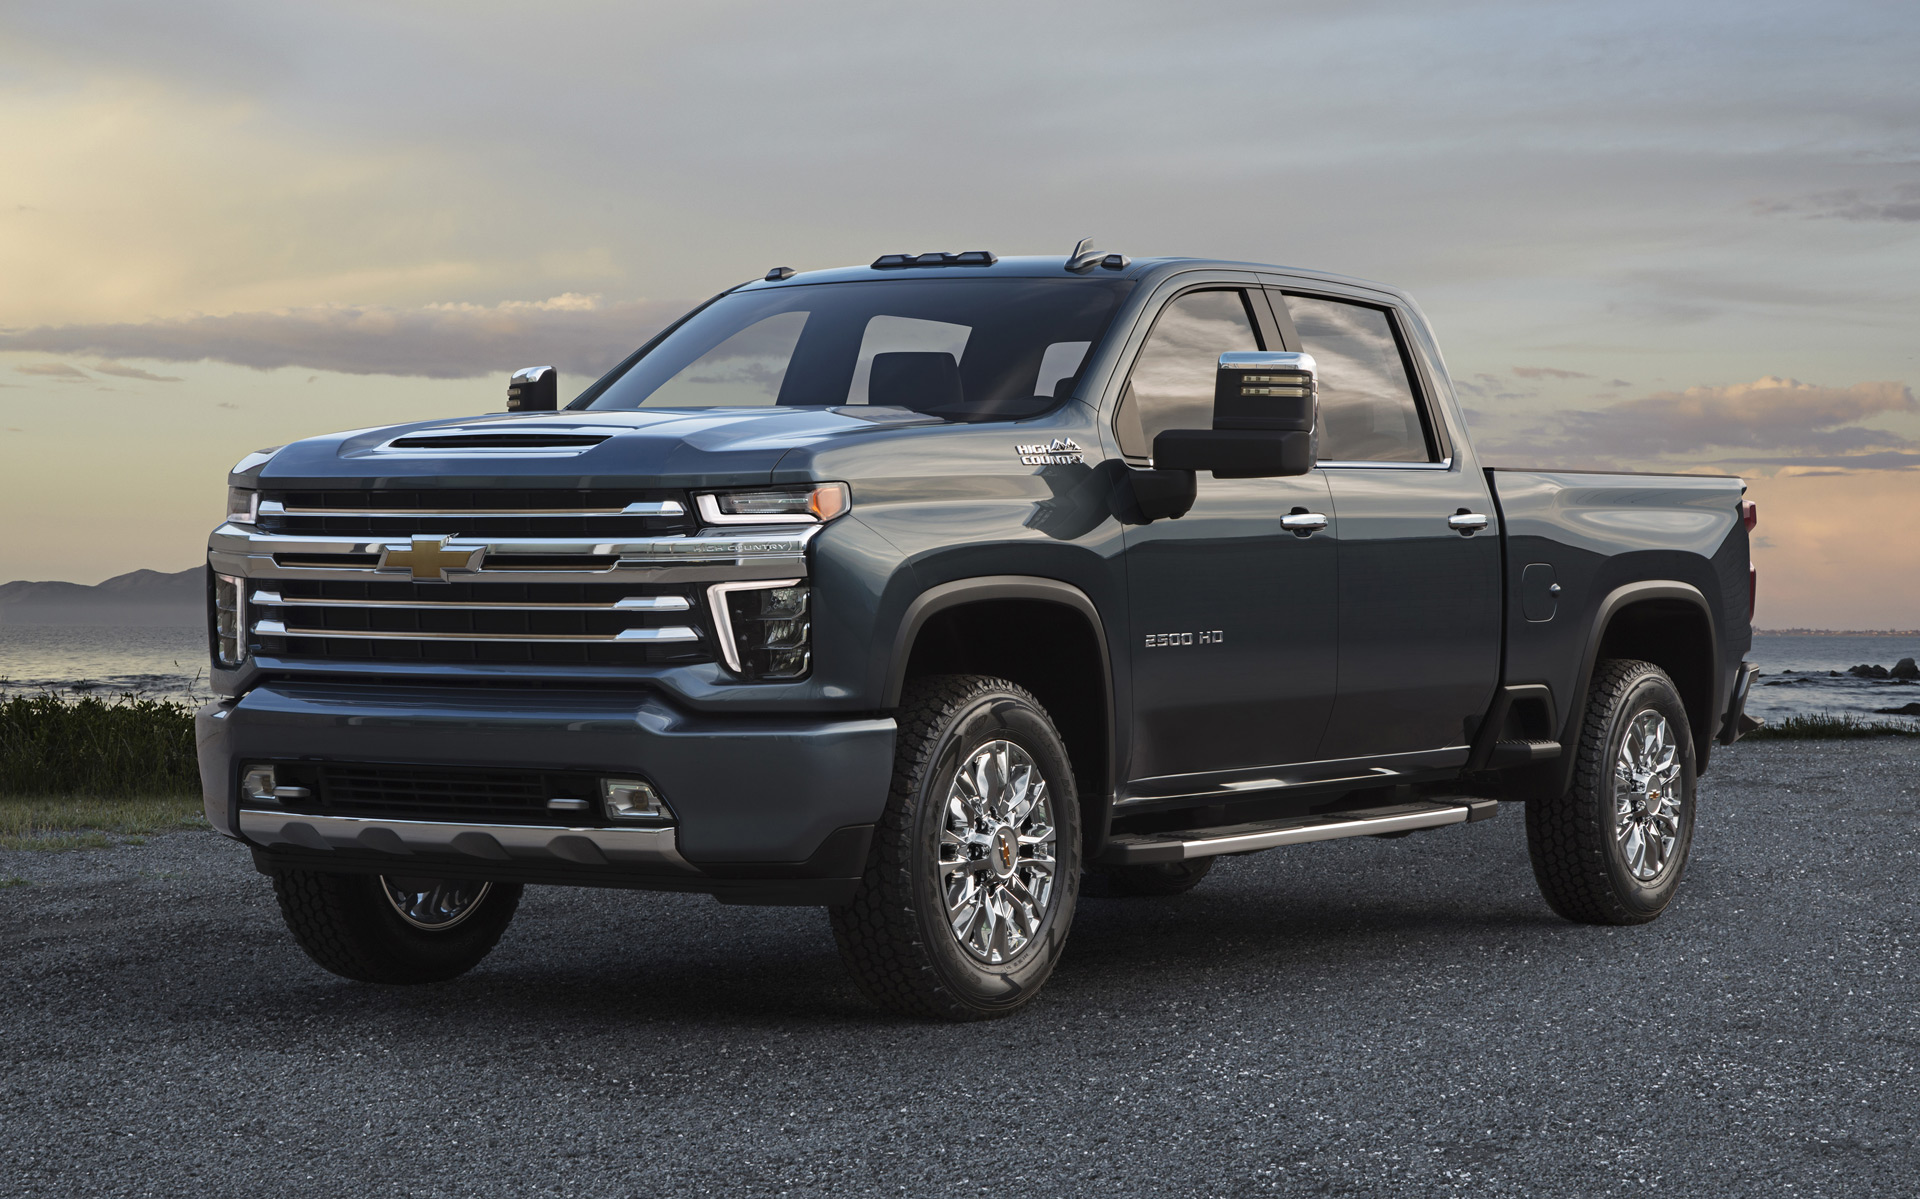 72 A 2020 Silverado 1500 2500 Hd Exterior and Interior